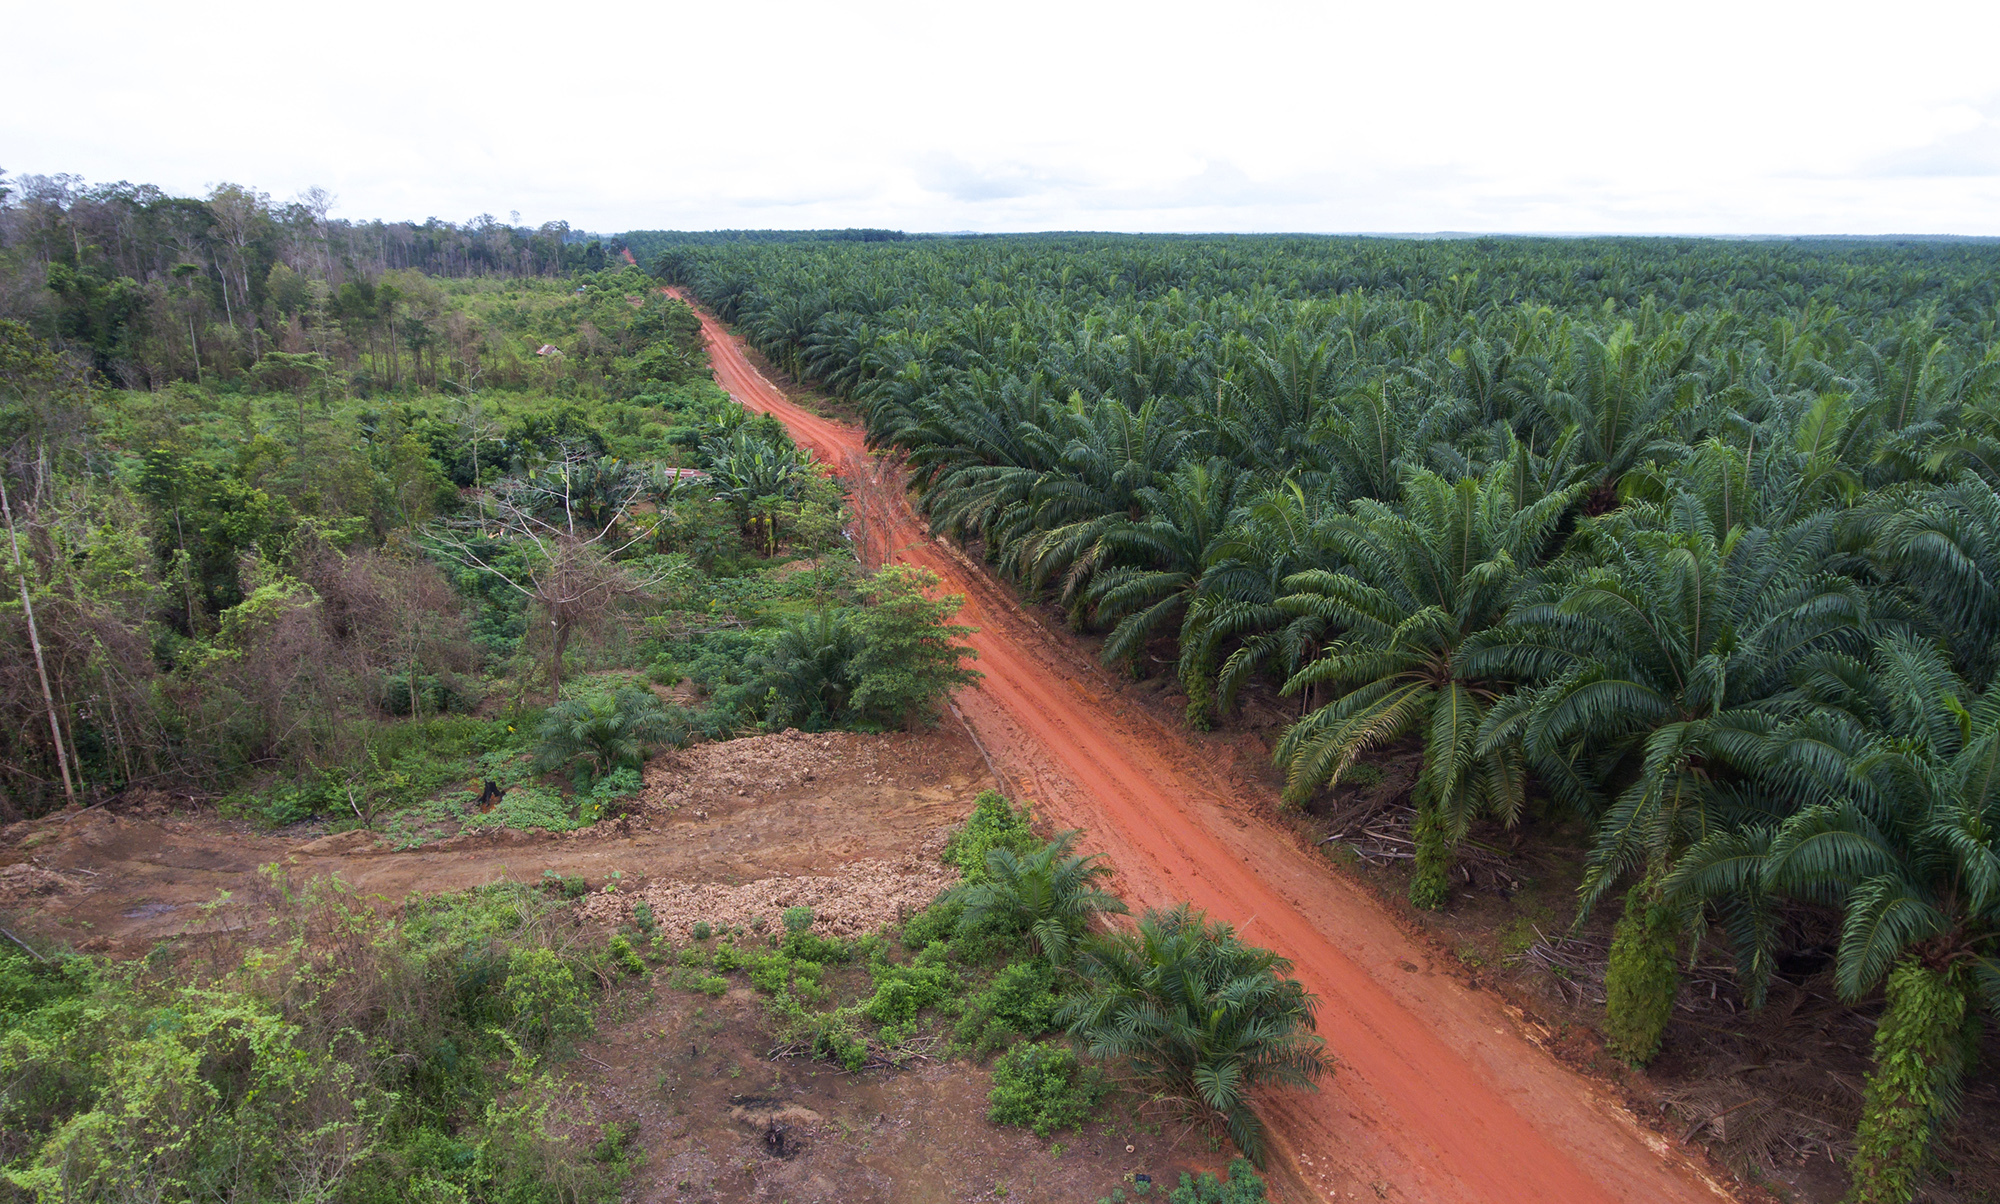 An oil palm plantation bordered by the rainforest it has replaced in Indonesia's Papua province